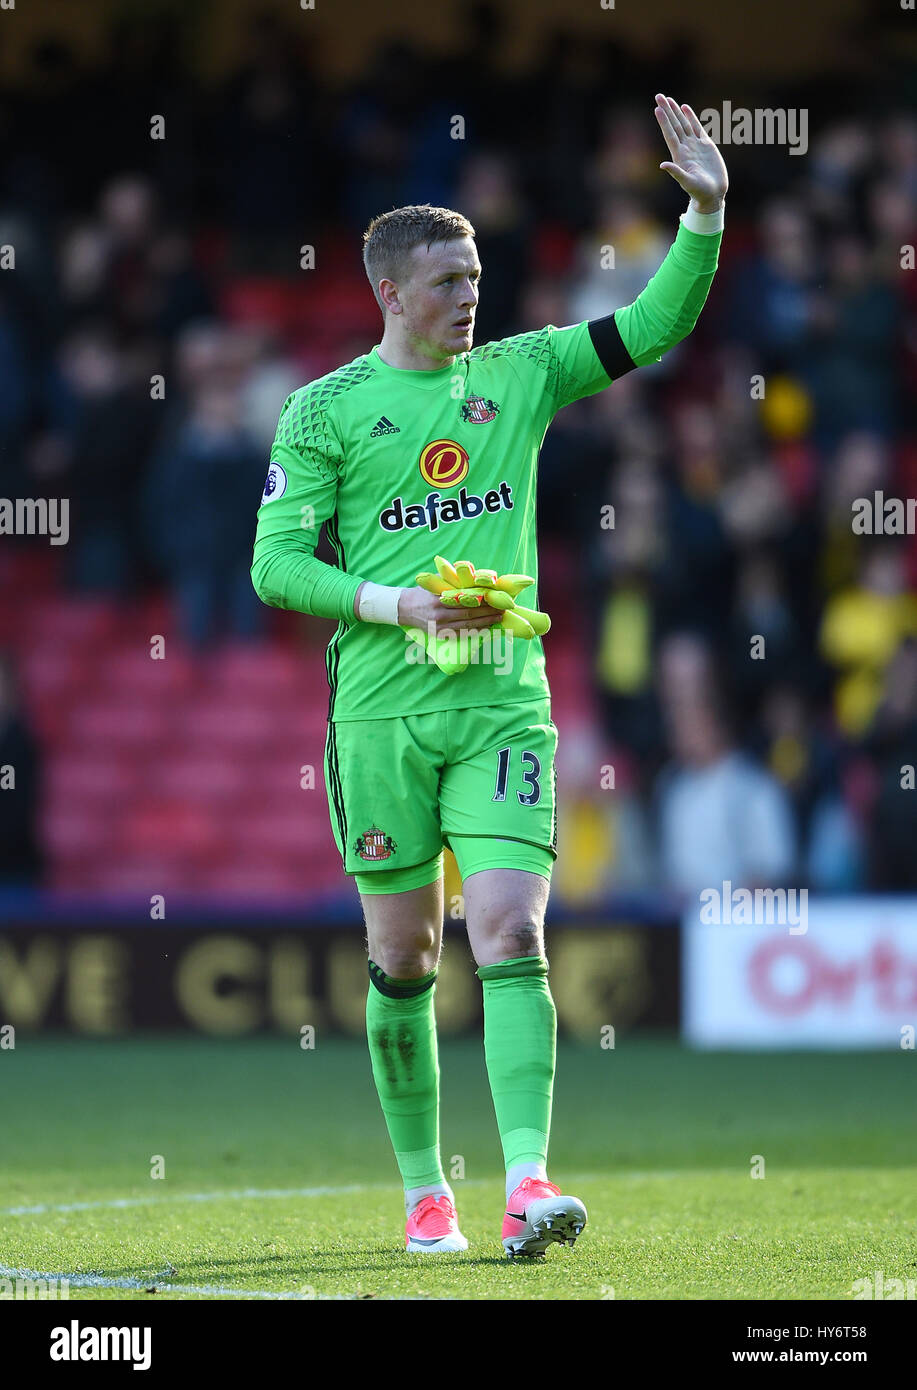 Sunderland goalkeeper Jordan Pickford after the Premier League match     Sunderland goalkeeper Jordan Pickford after the Premier League match at  Vicarage Road  Watford